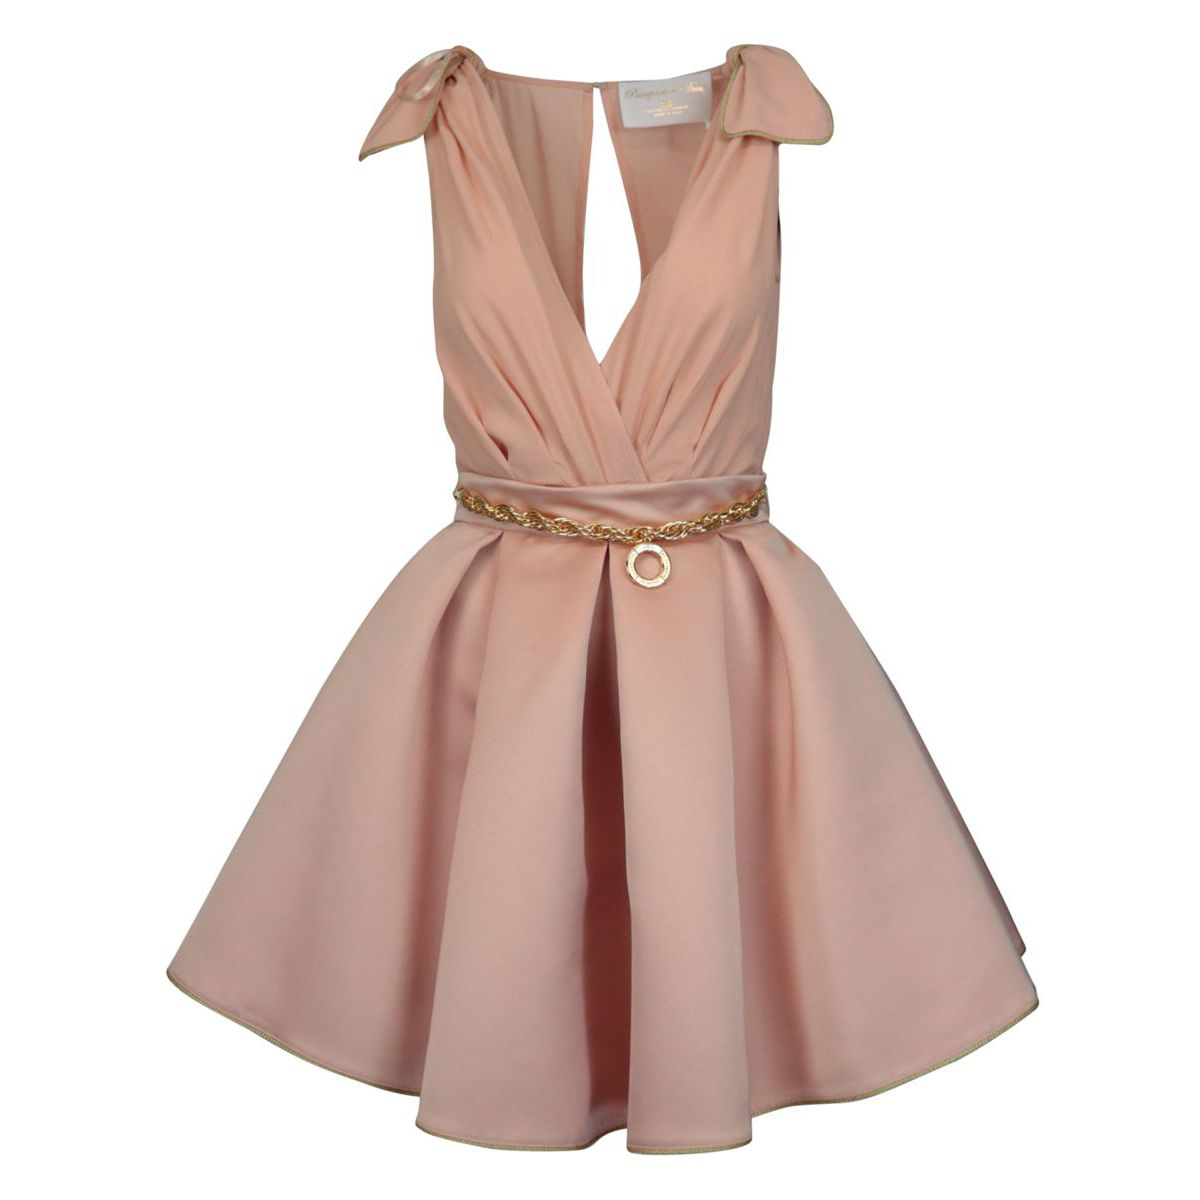 Sleeveless georgette and duchess dress Antique pink Elisabetta Franchi